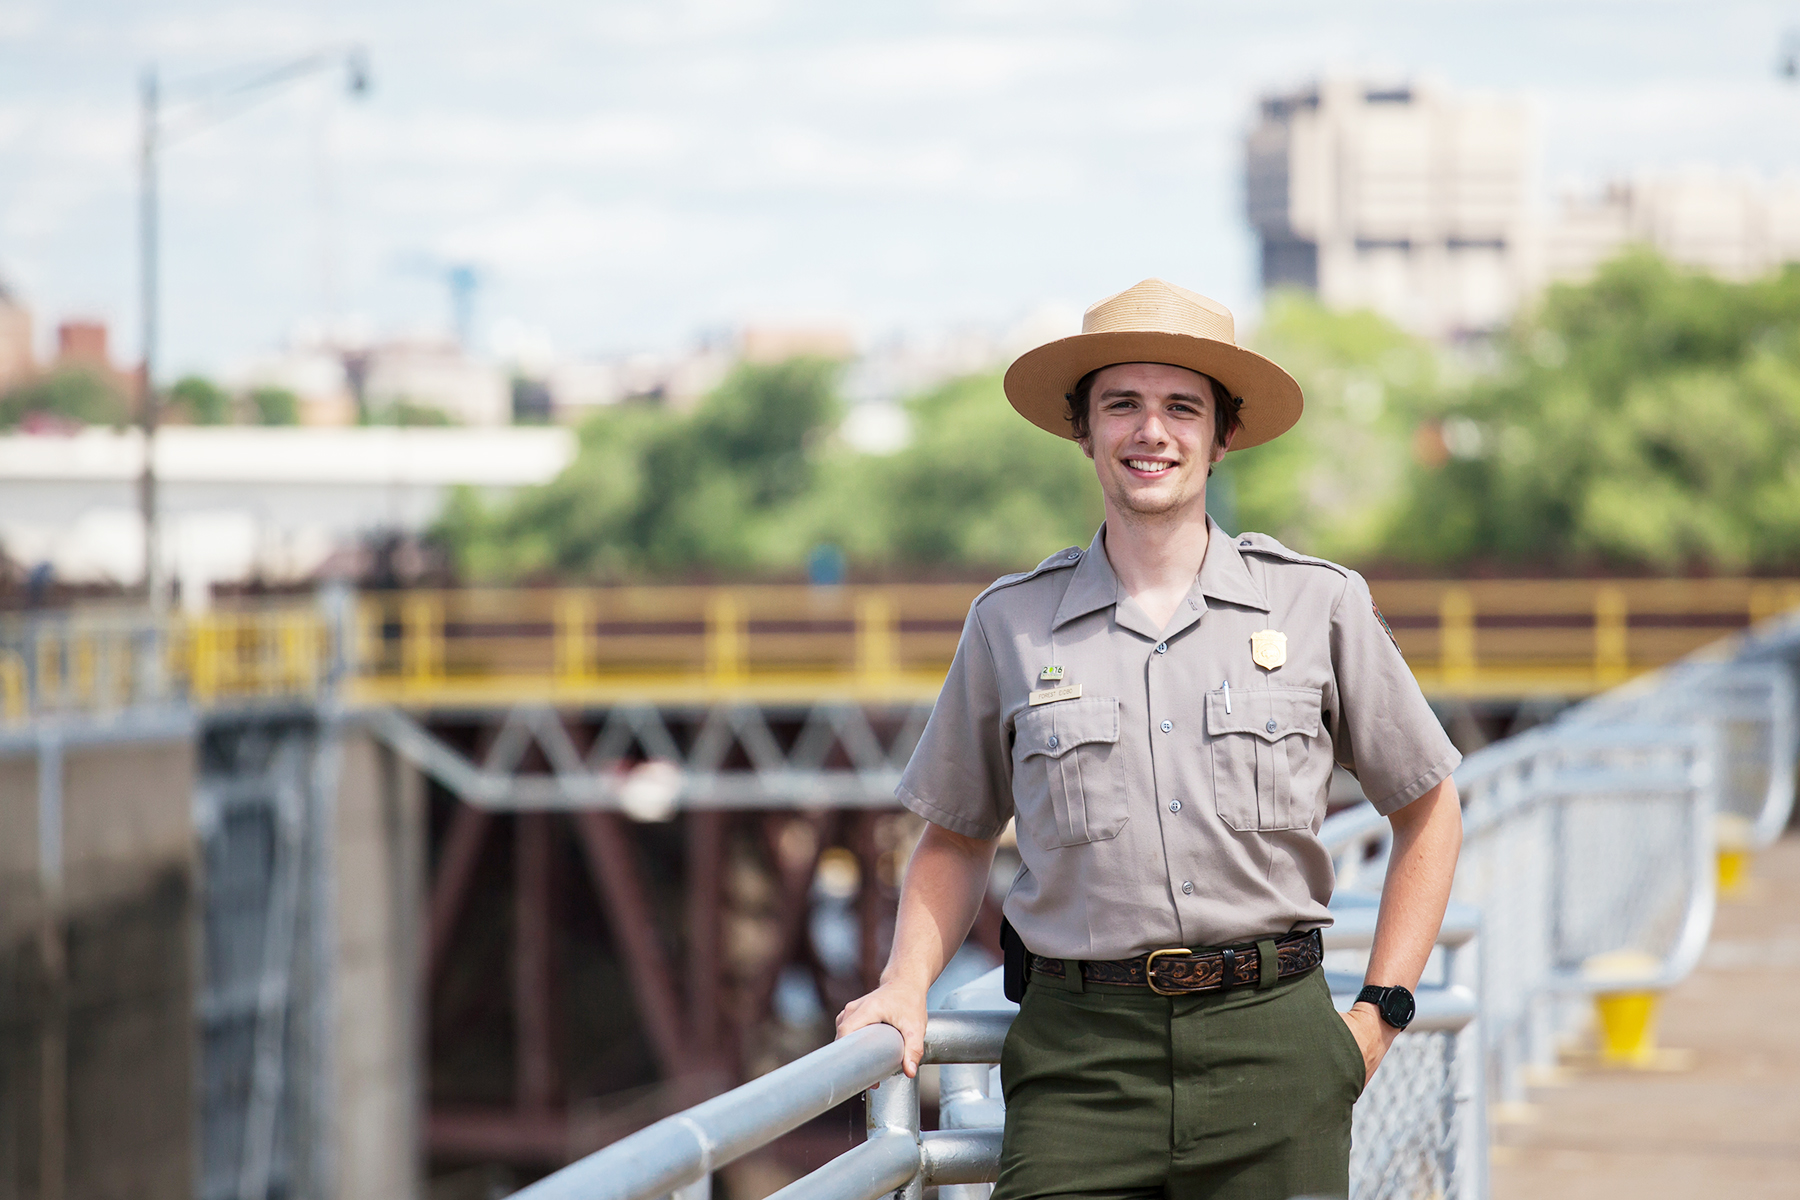 National Park Service ranger at Upper St. Anthony Falls Lock and Dam.